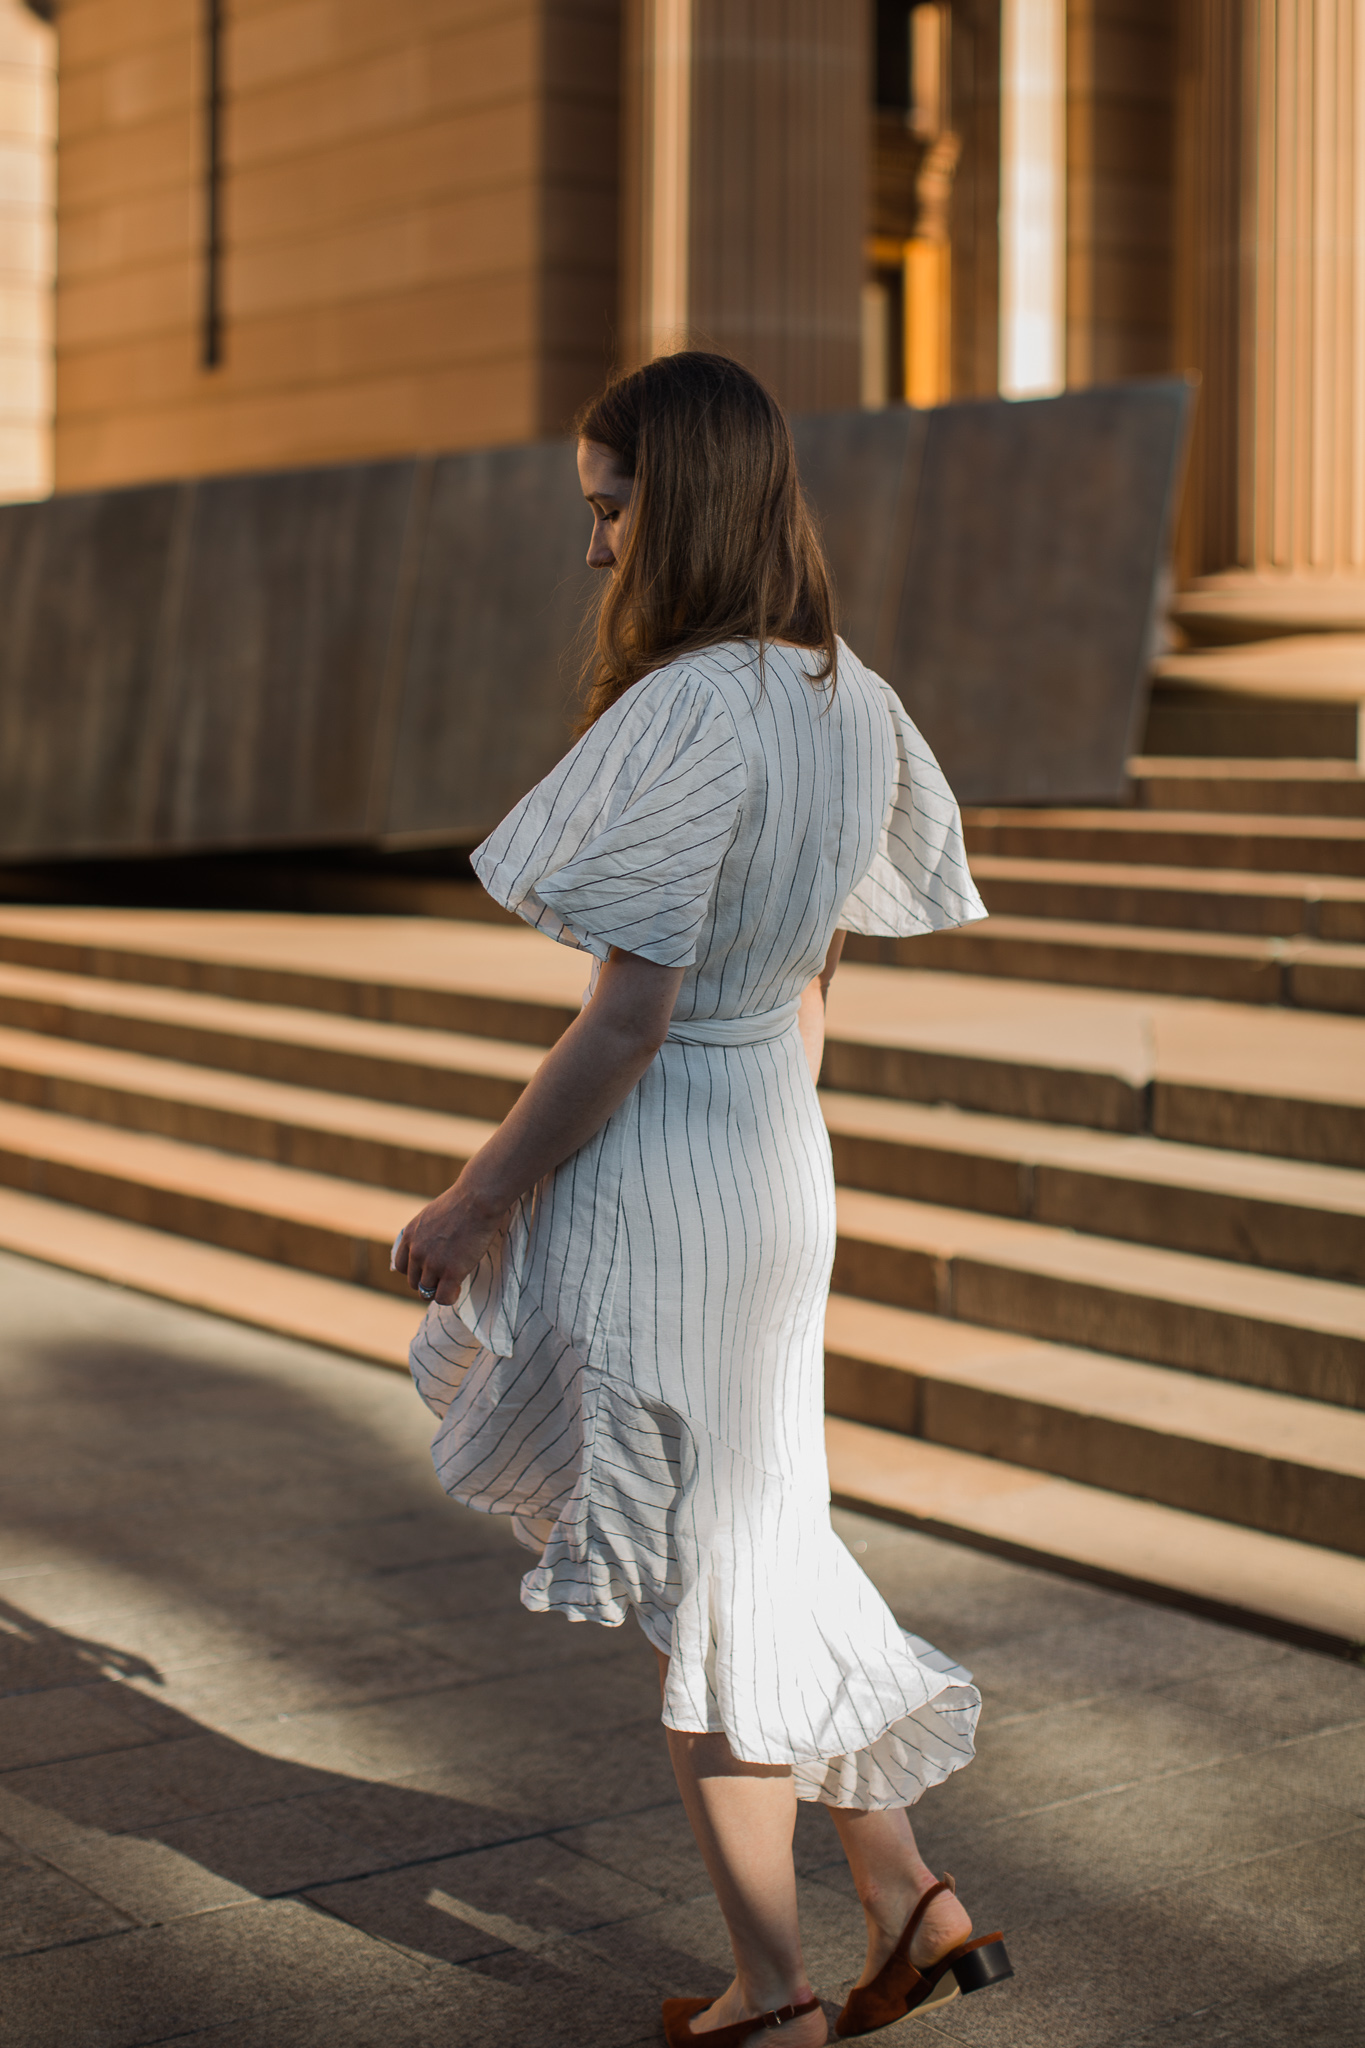 Linen country road dress for spring